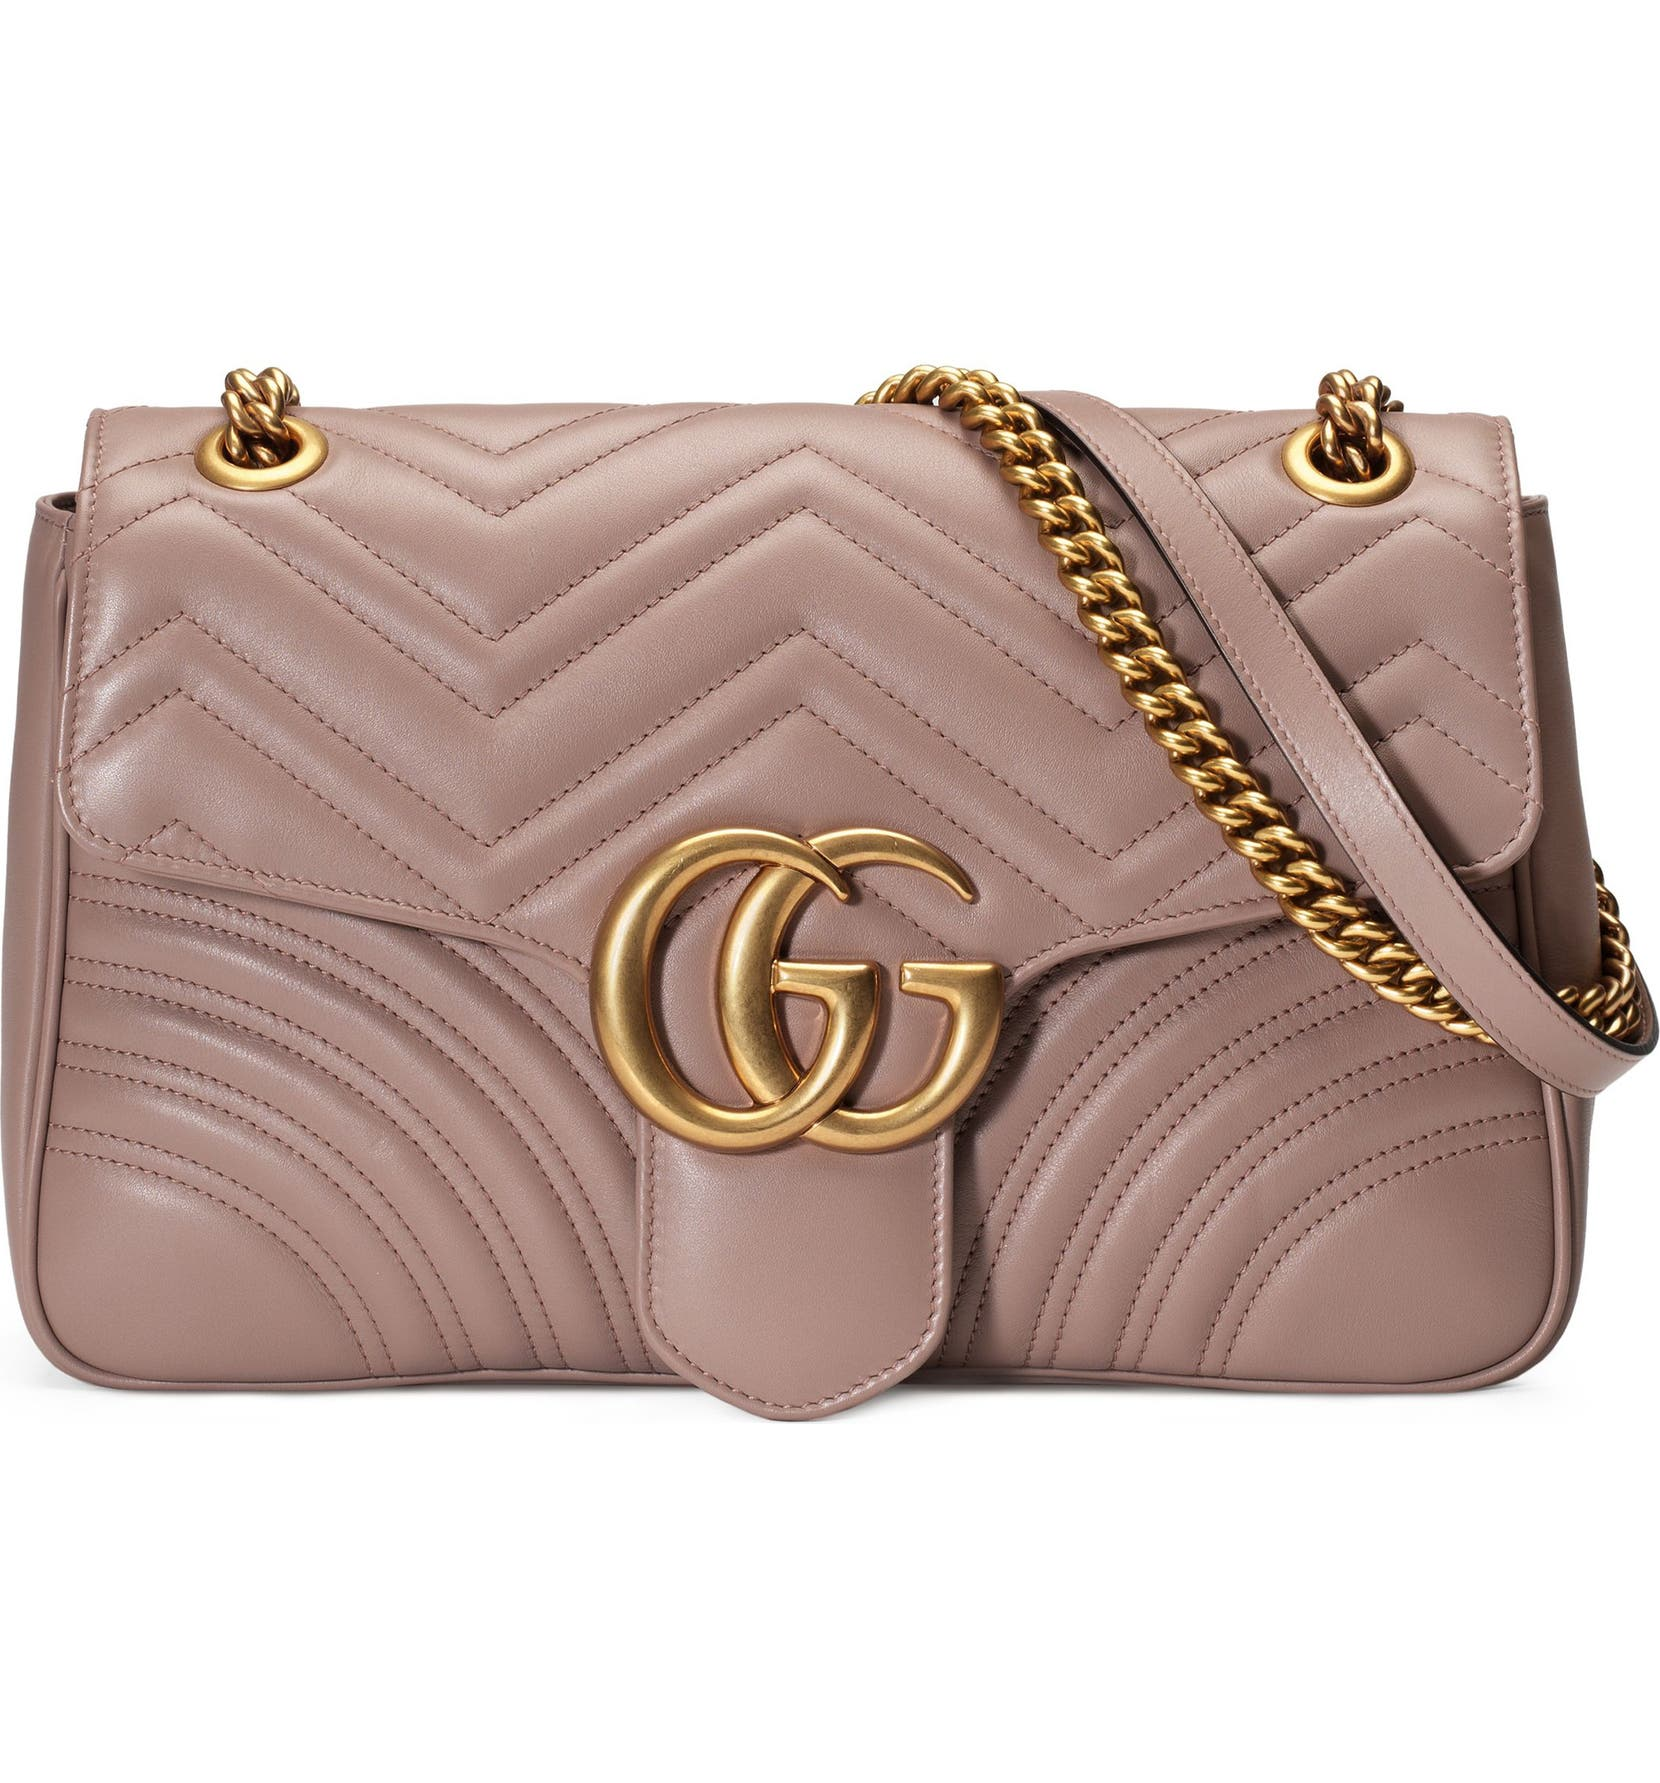 b2950703c Gucci Medium GG Marmont 2.0 Matelassé Leather Shoulder Bag | Nordstrom